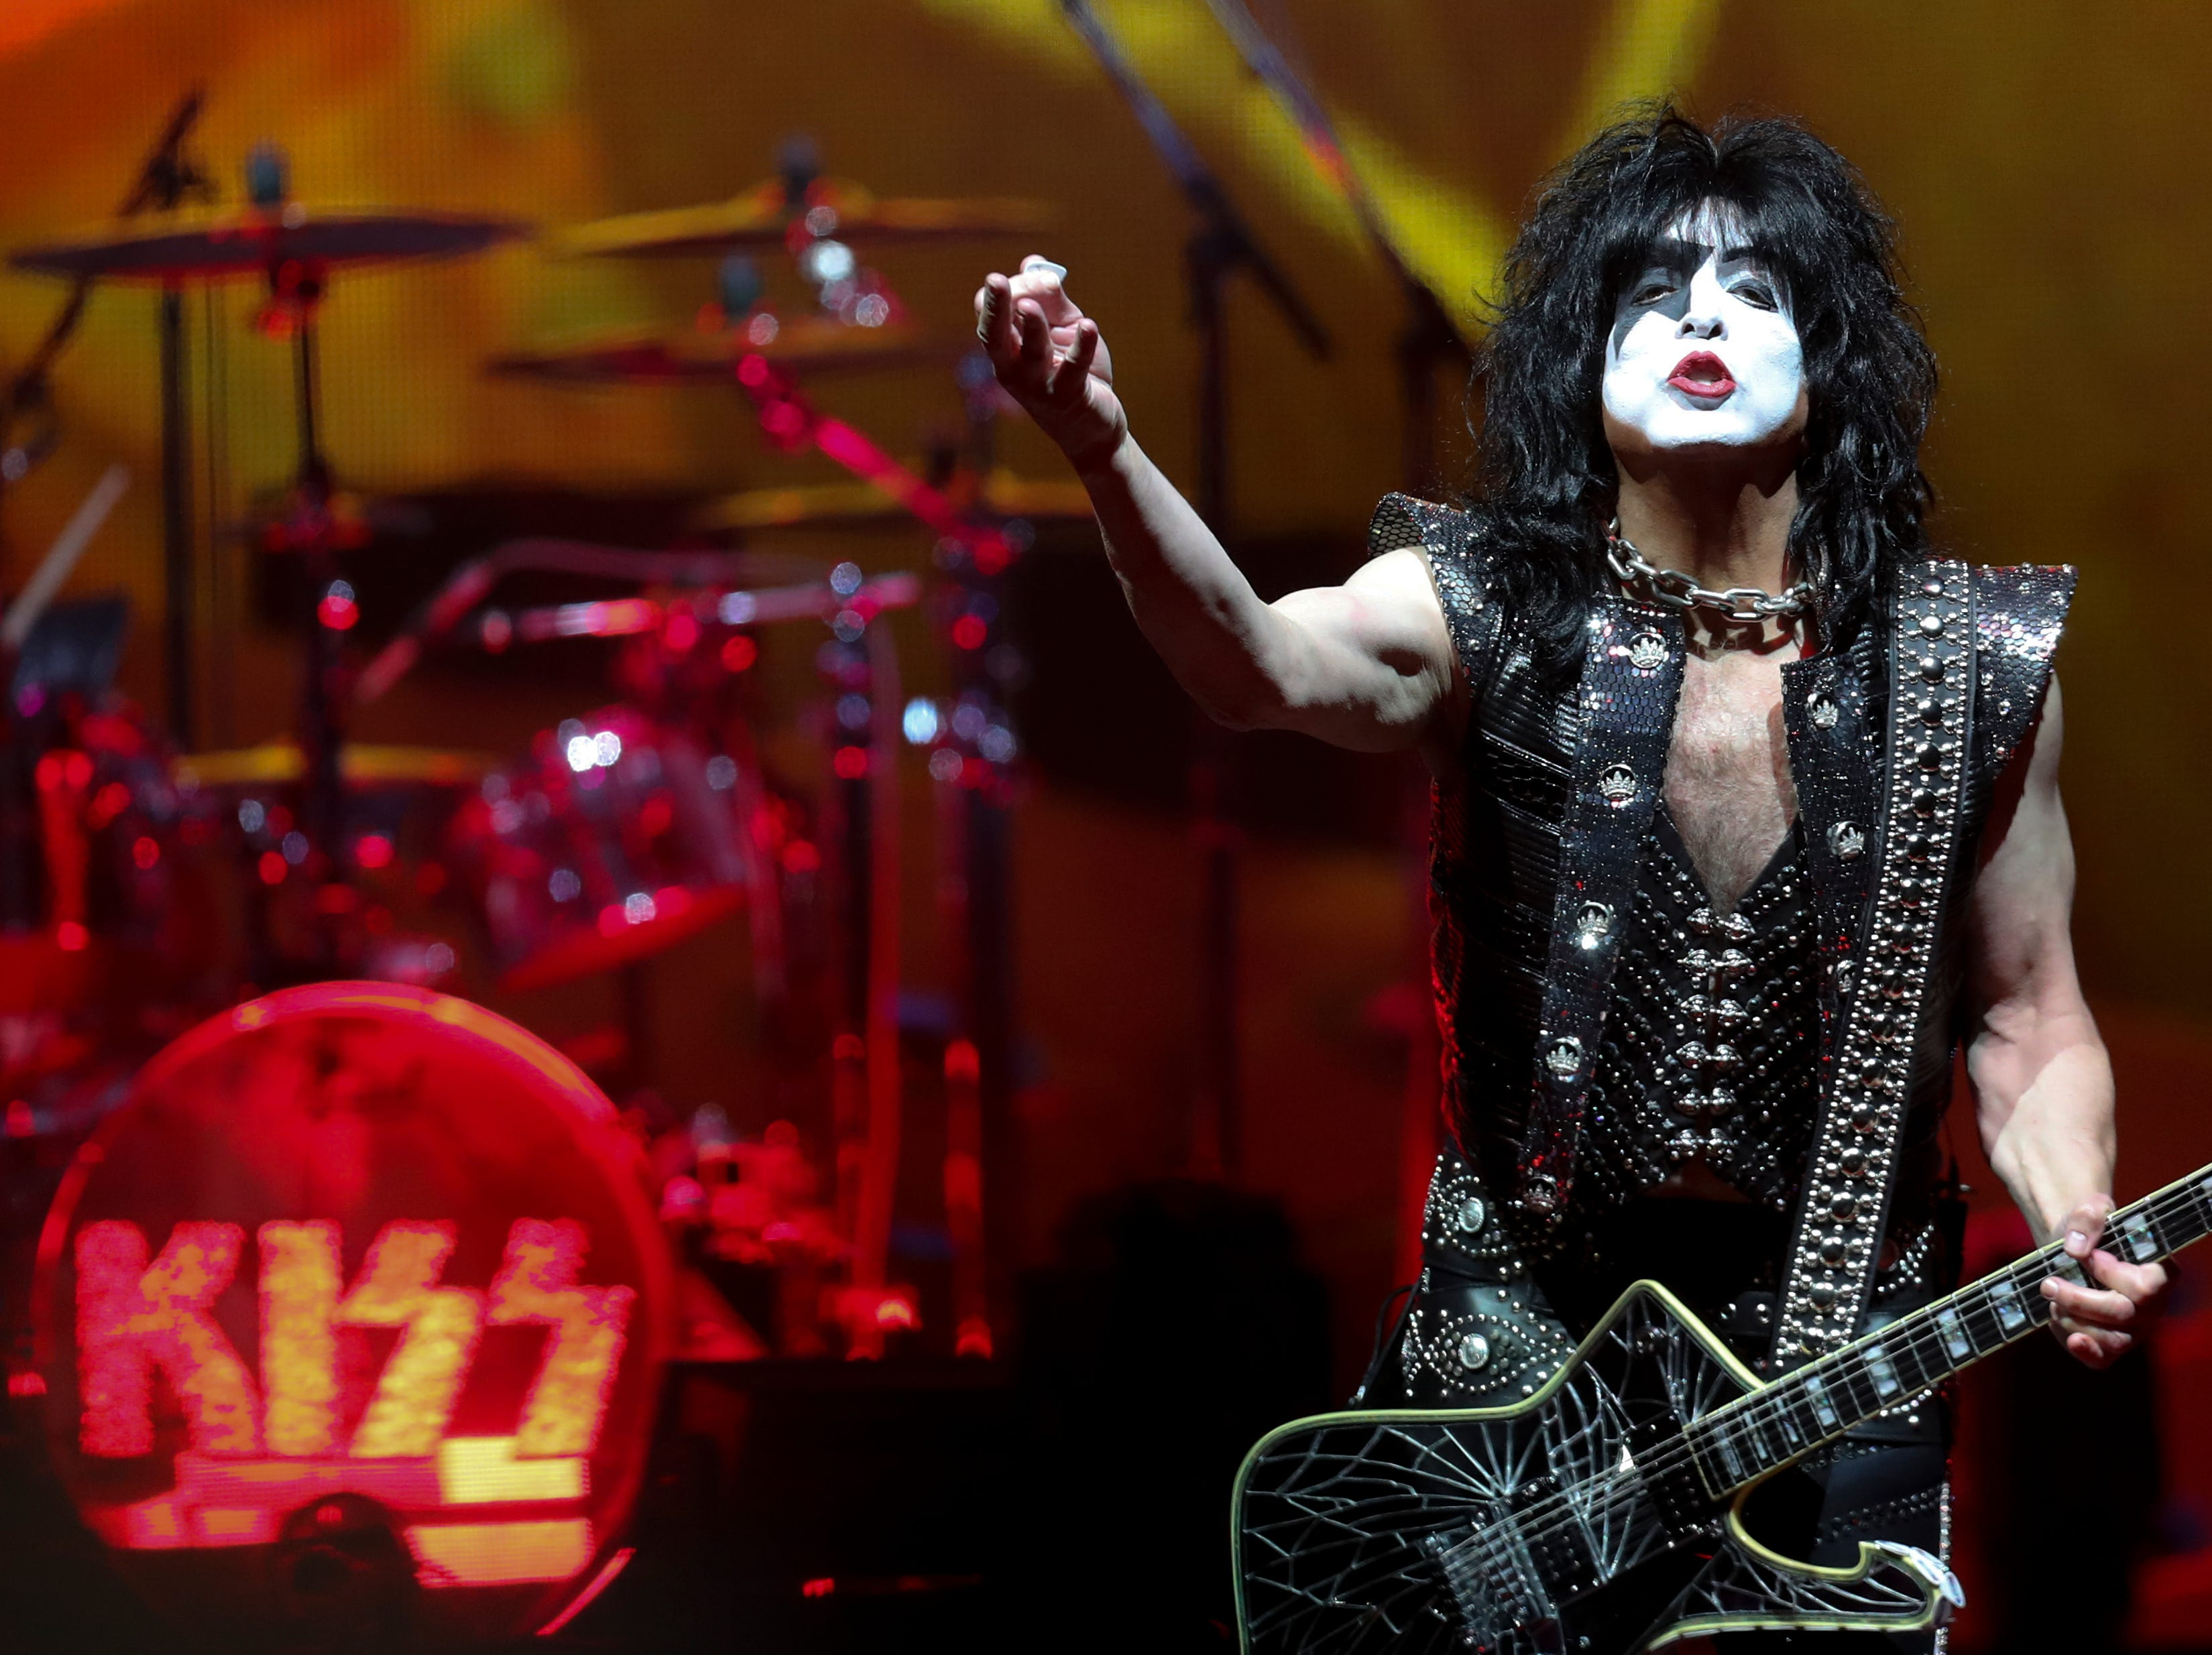 Paul Stanley of KISS entertains the crowd at the KFC Yum Center on March 12.